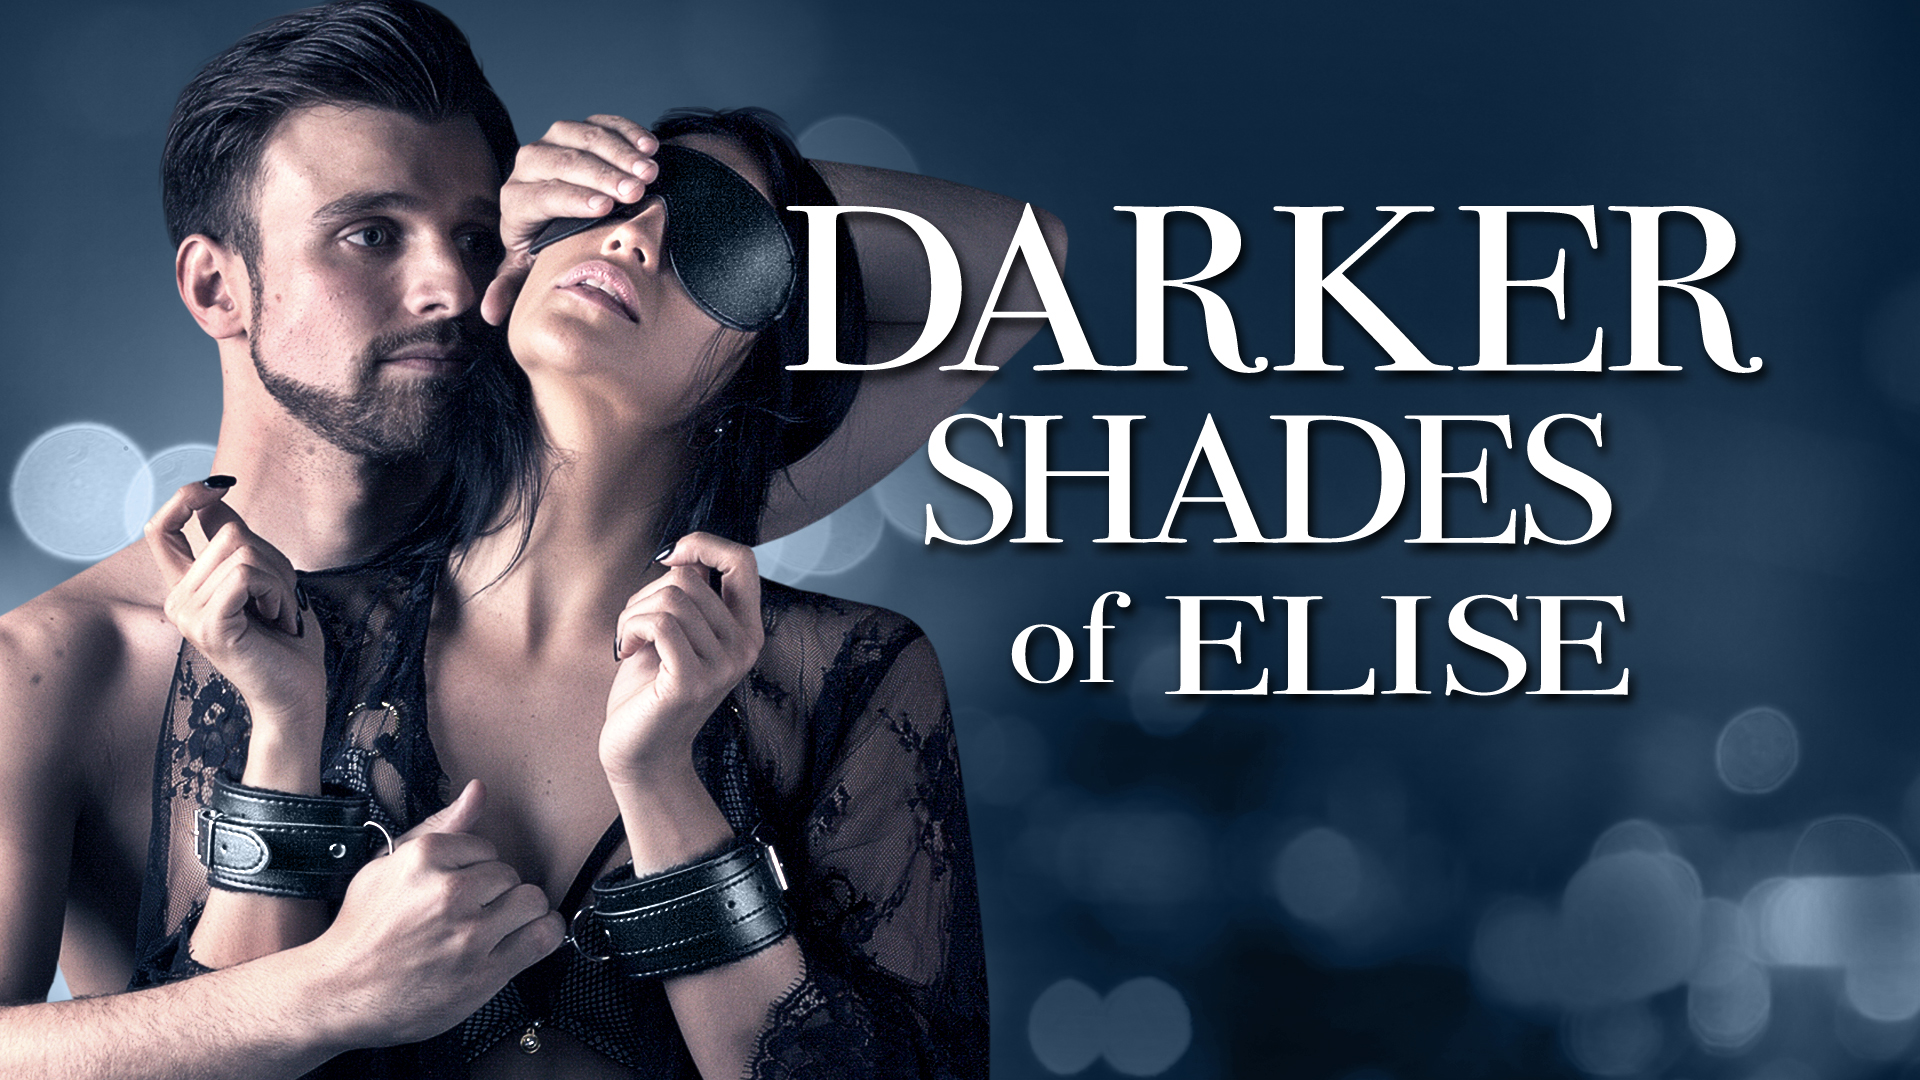 Darker Shades of Elise